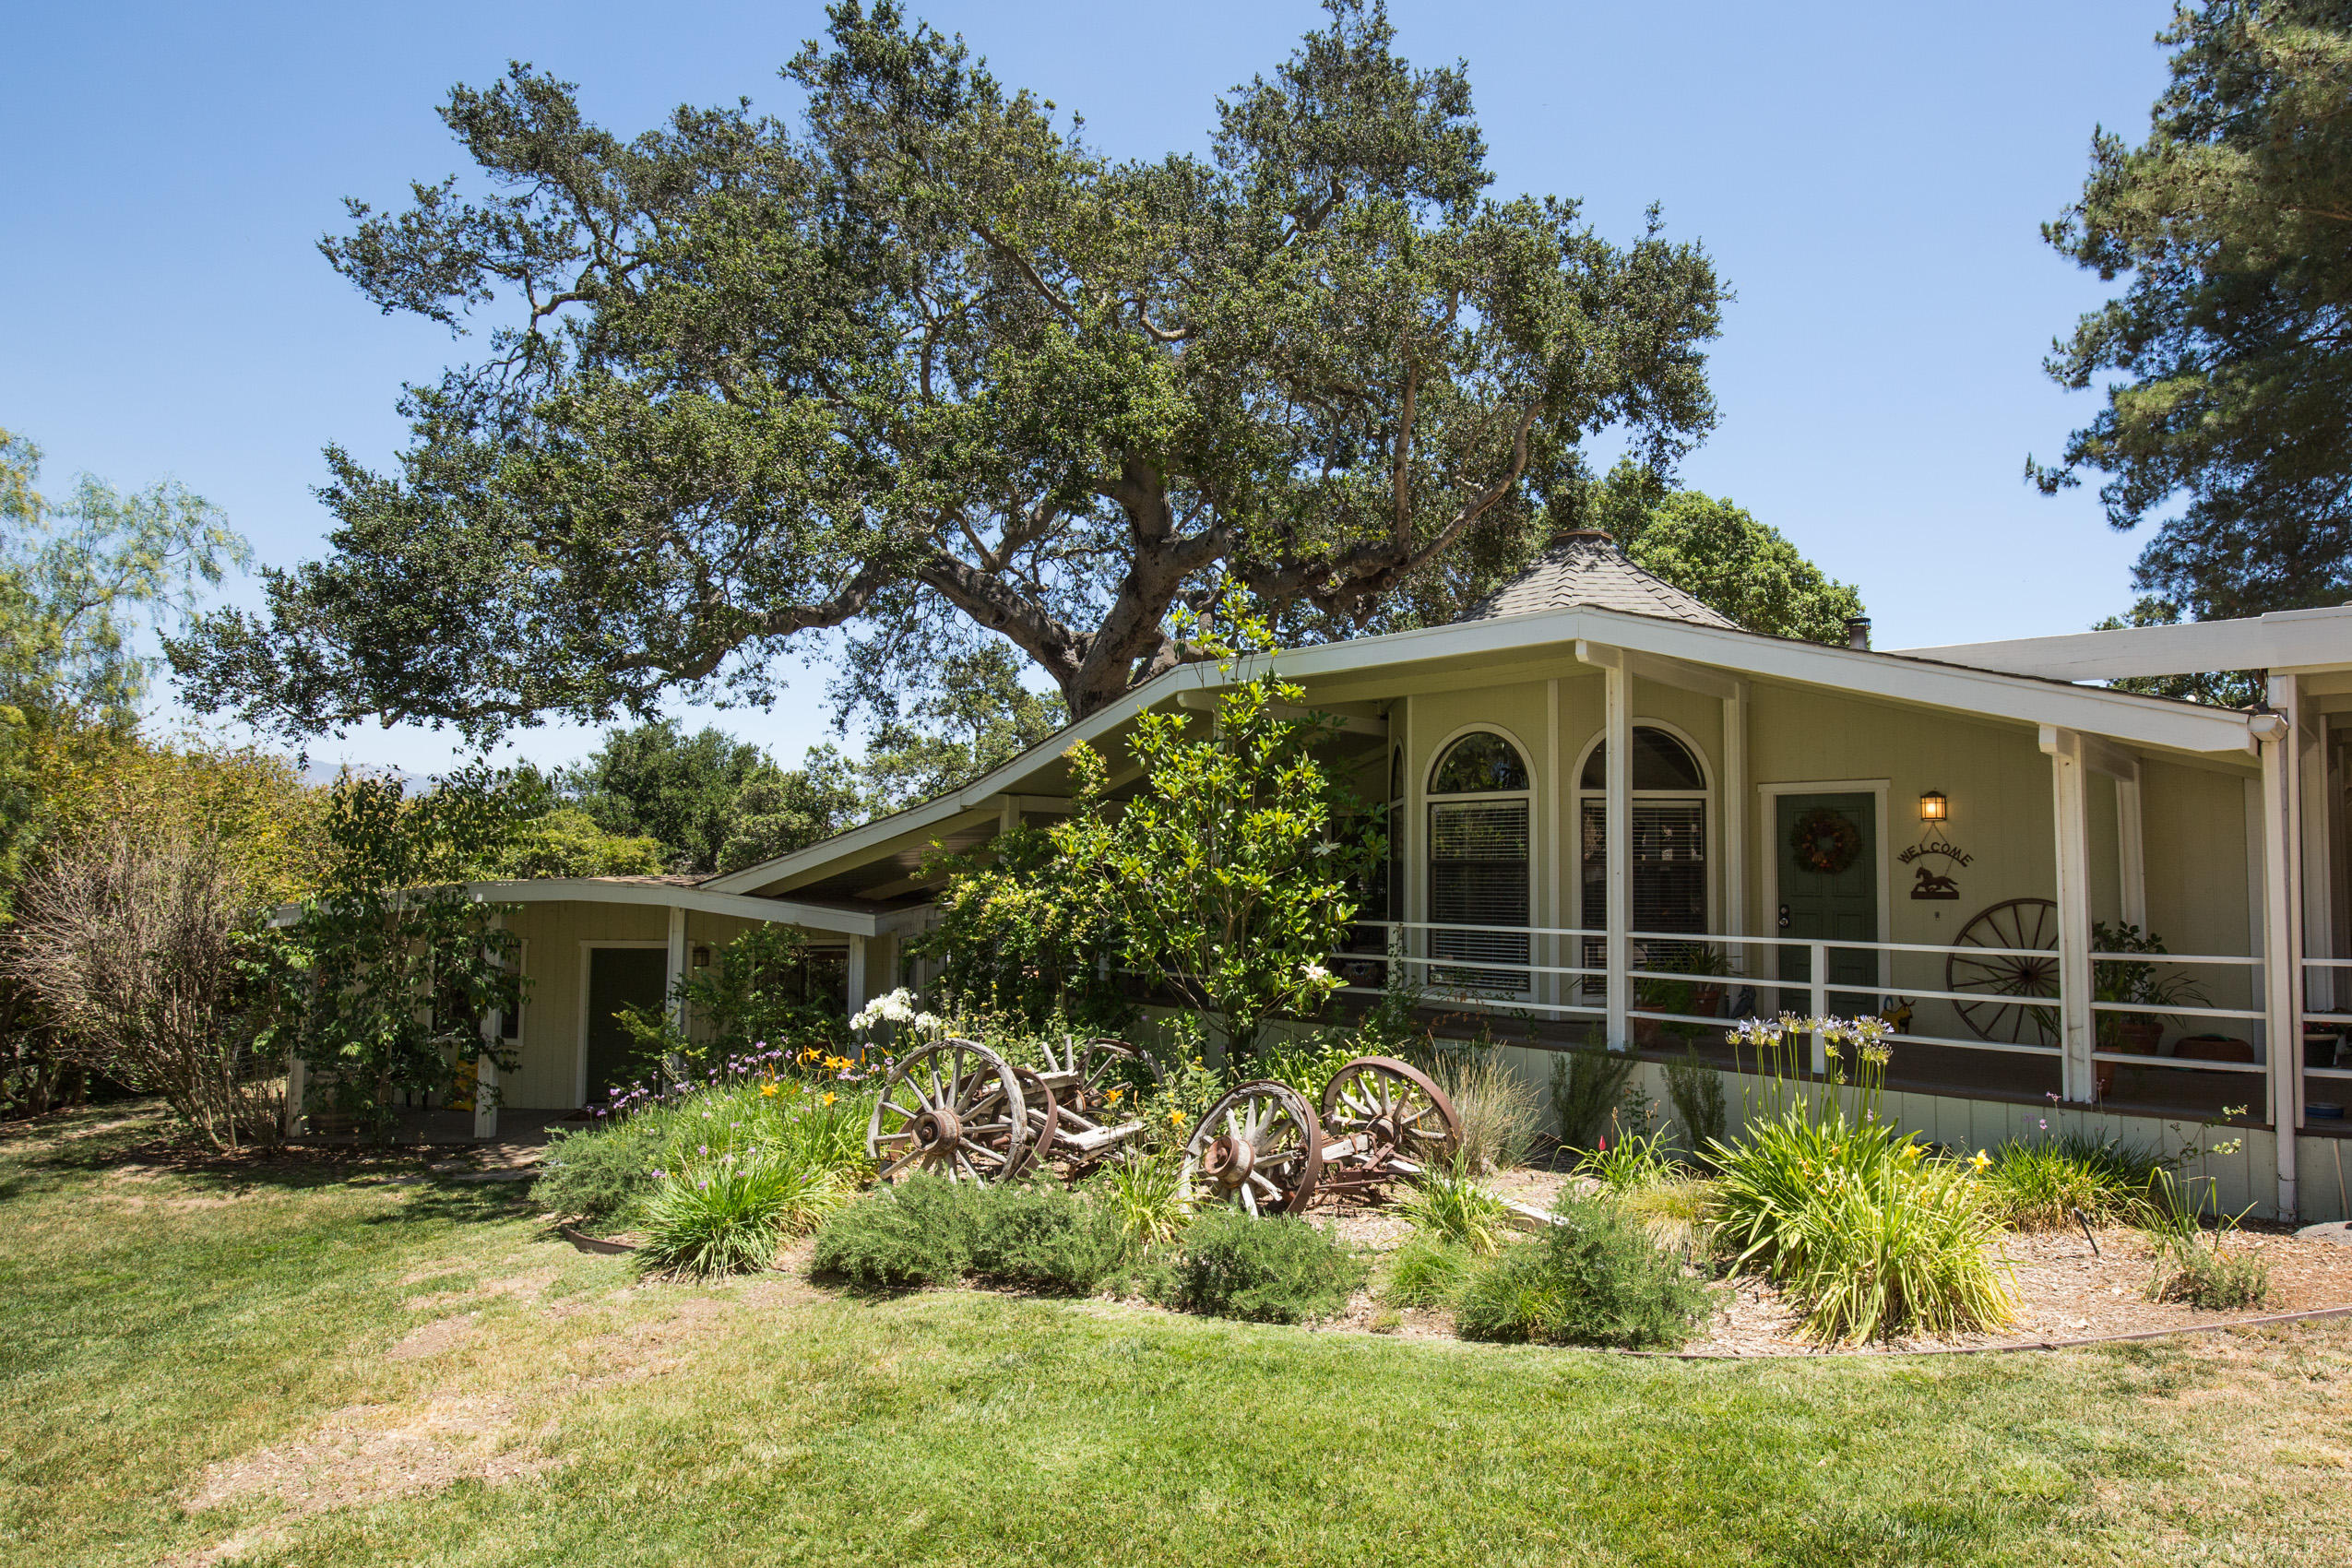 Property photo for 3025 W Hwy 154 Los Olivos, California 93441 - 18-952